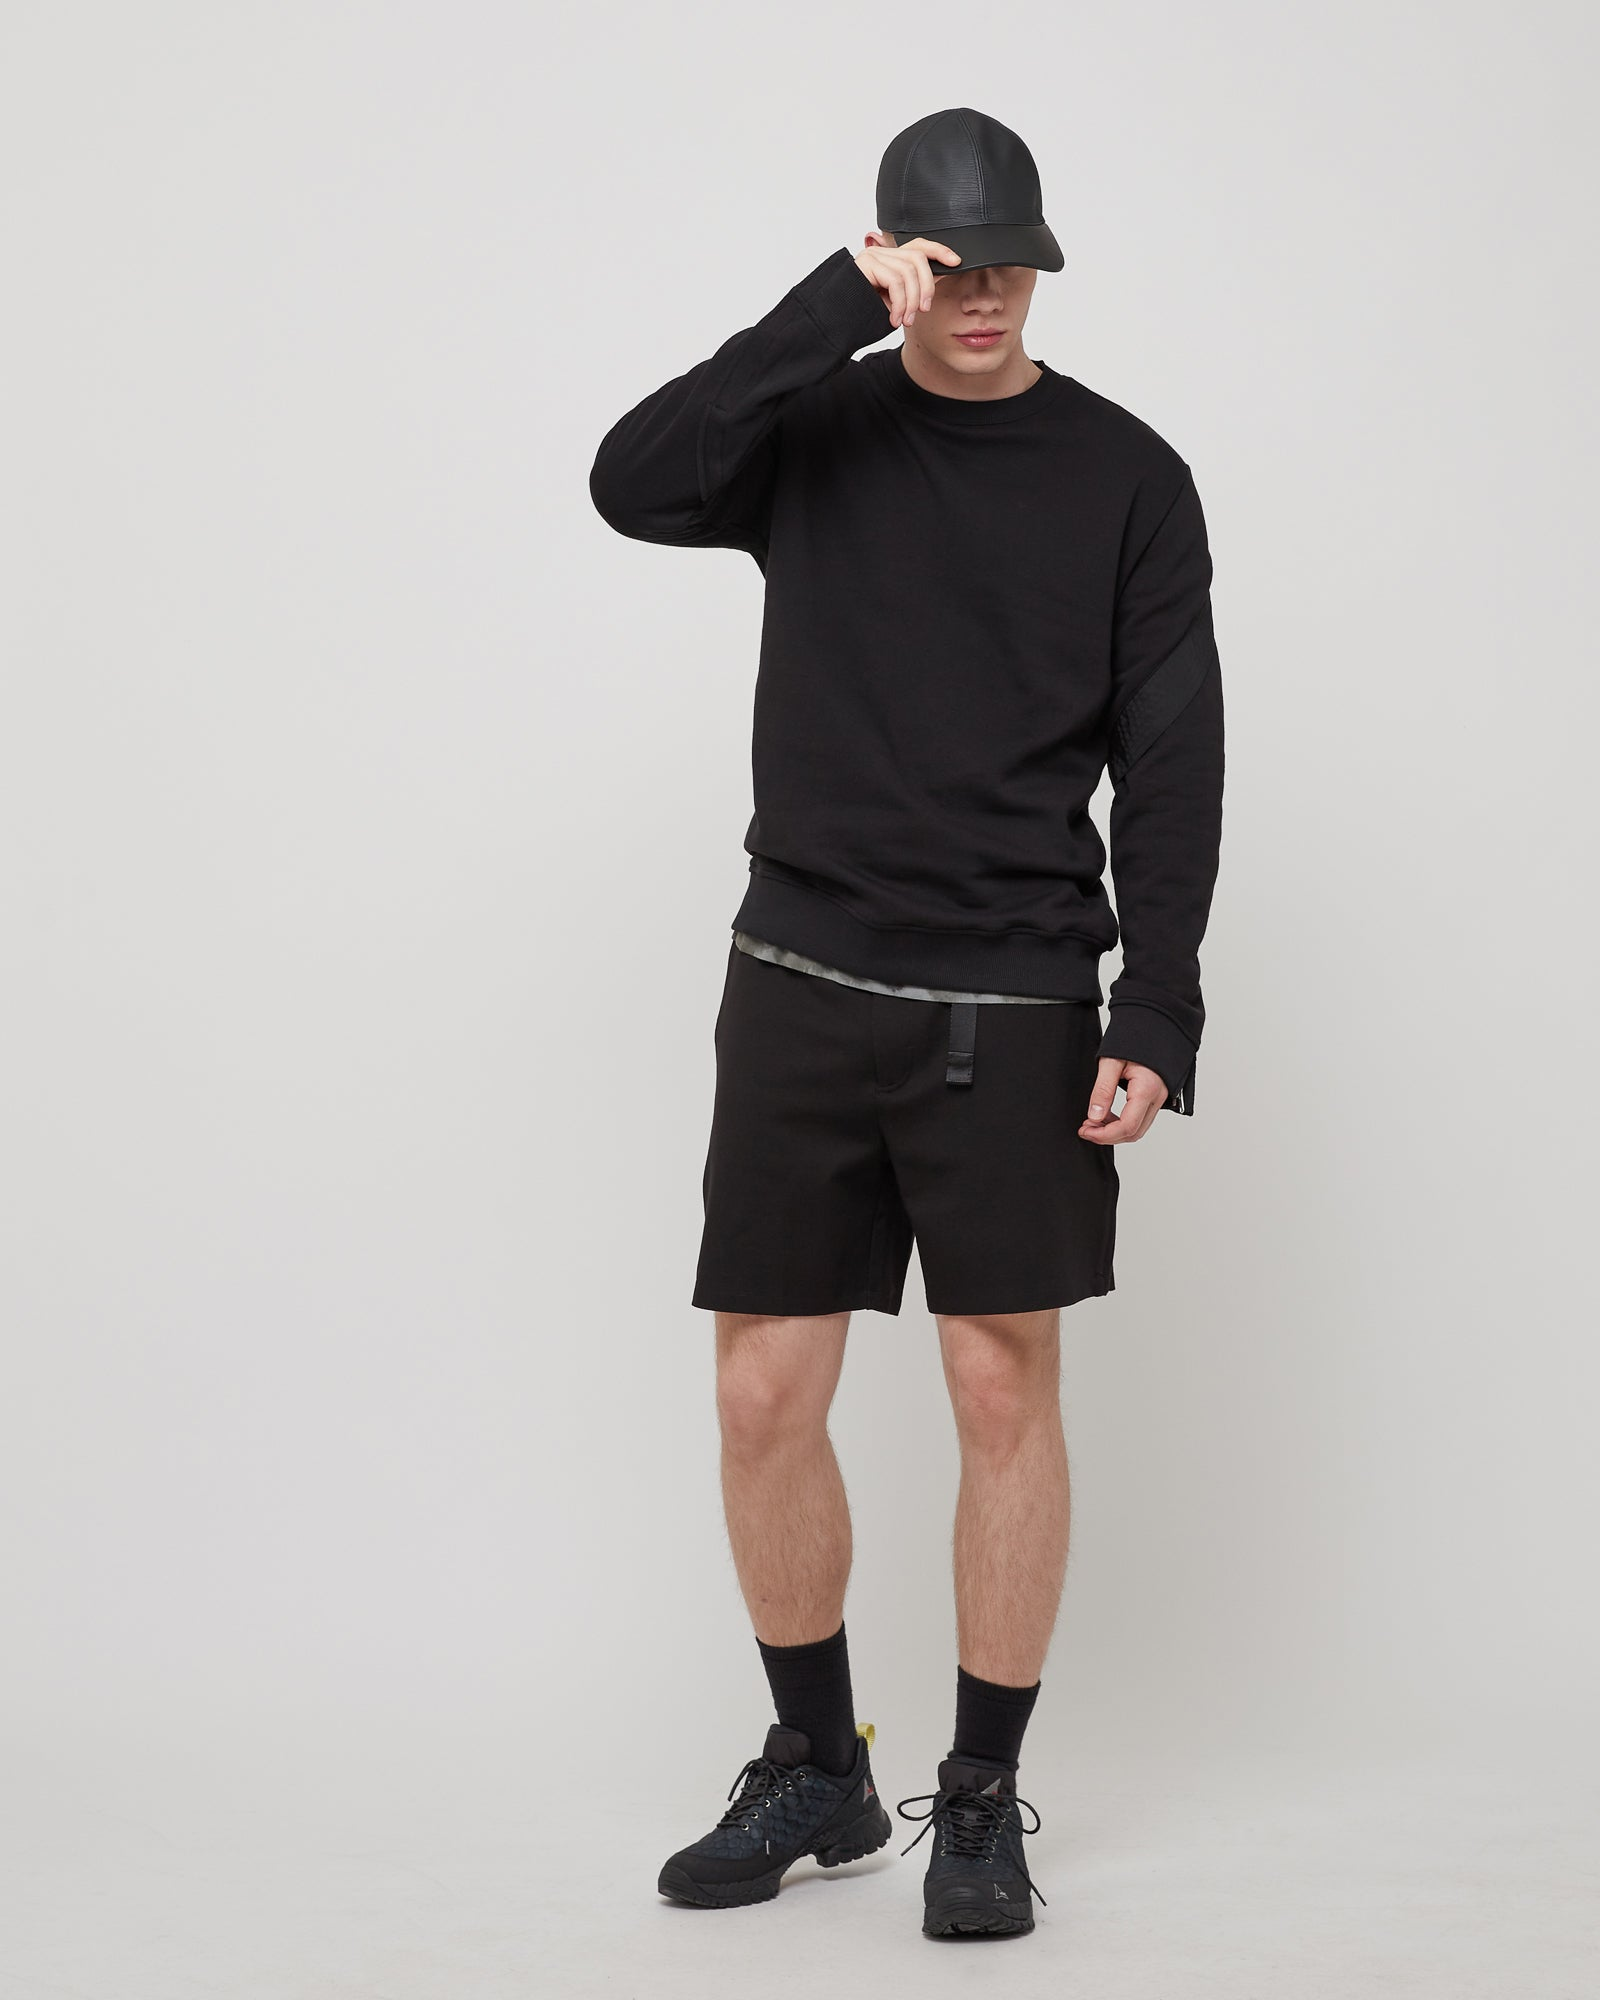 Trek Crewneck in Black